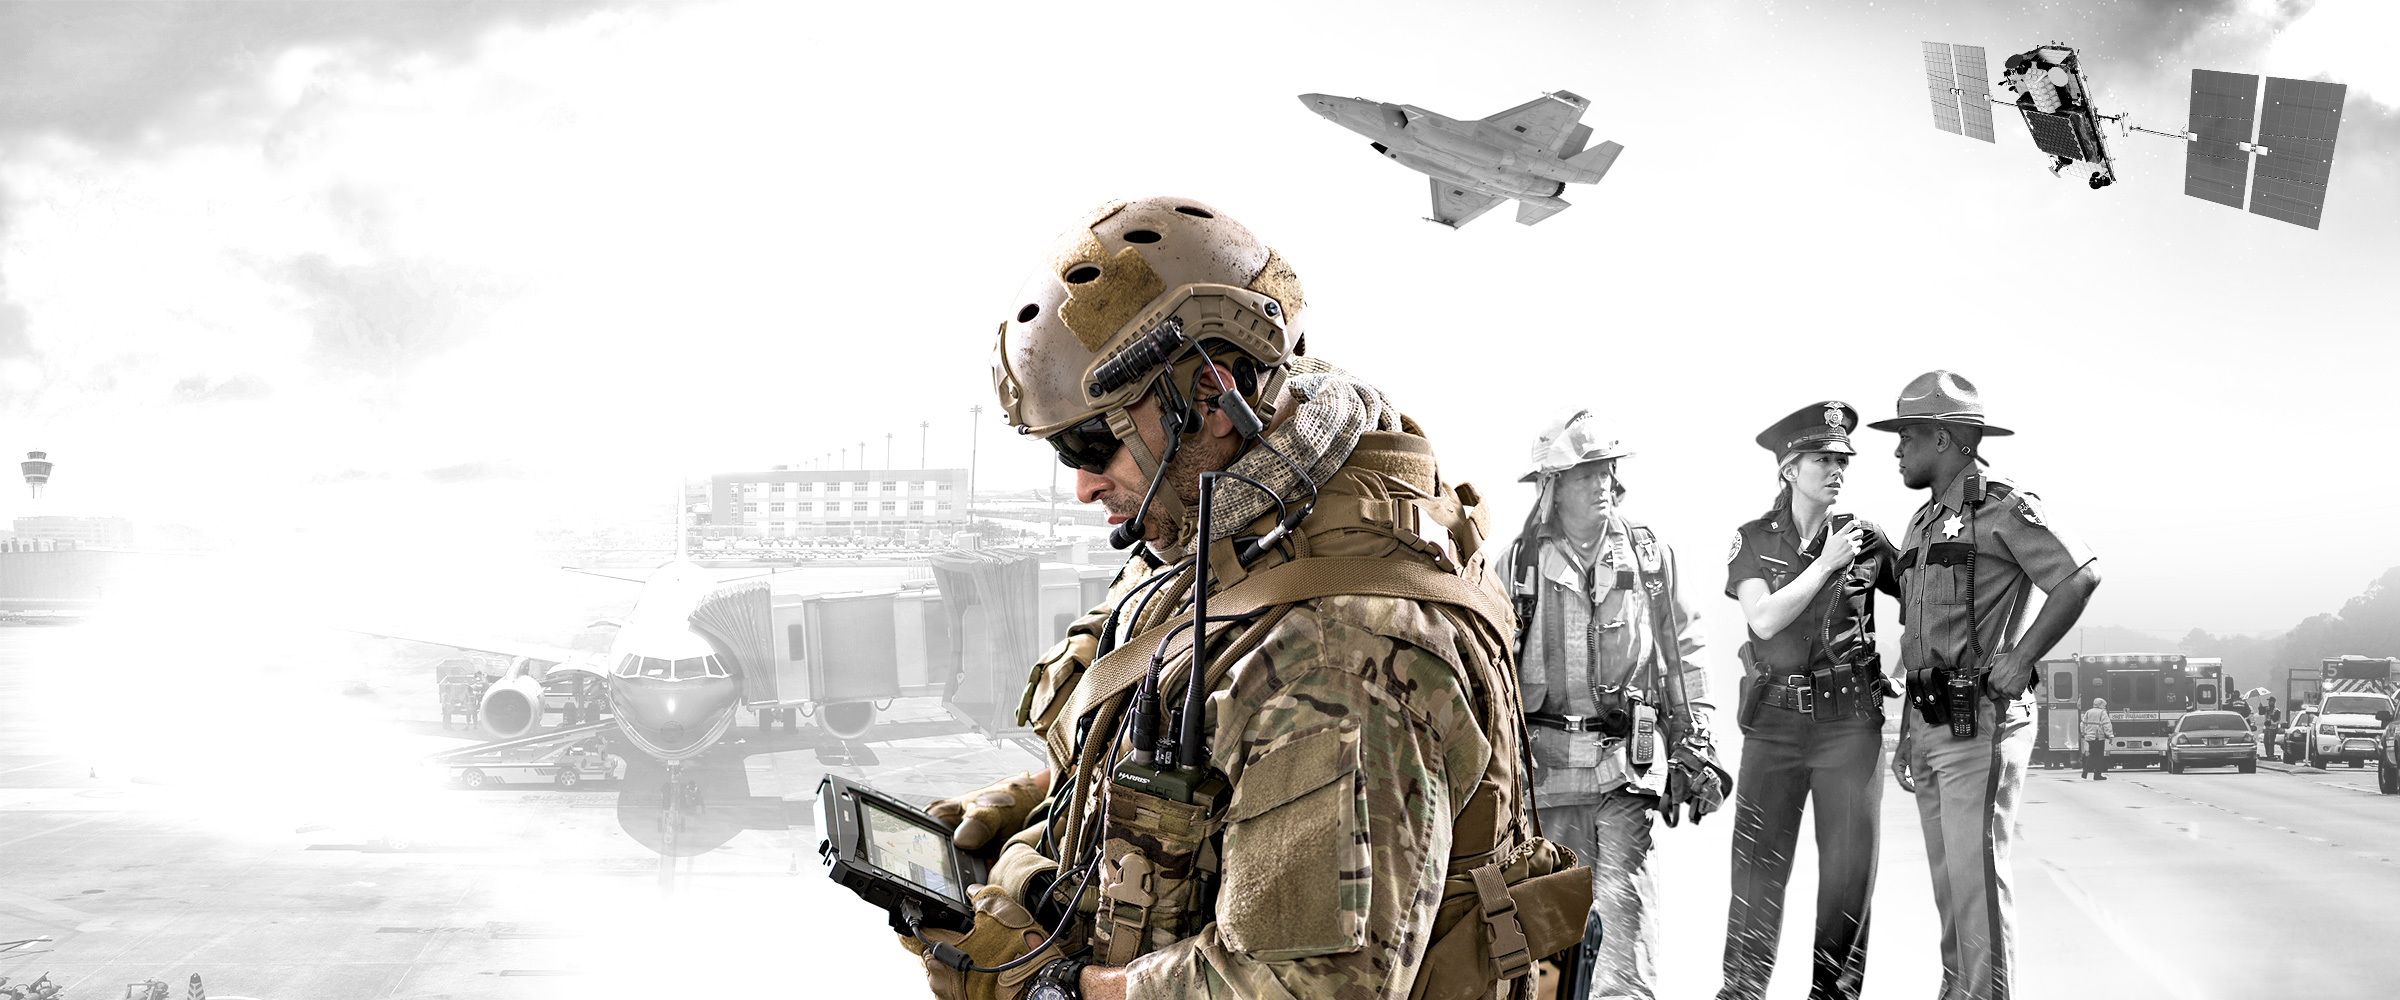 Many other military and industrial systems and products